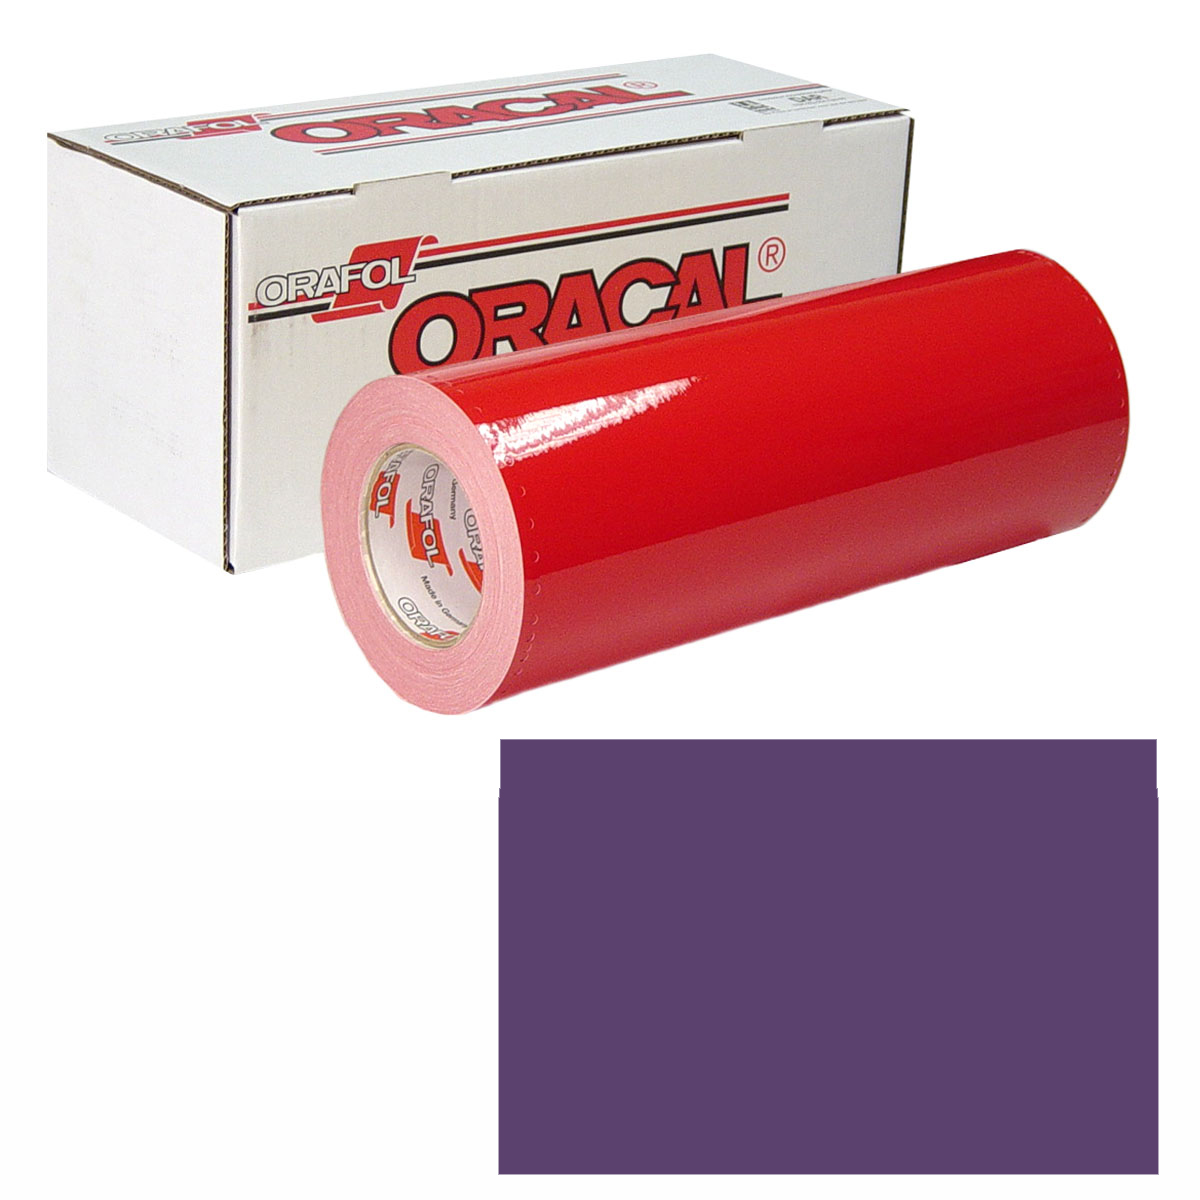 ORACAL 951M Unp 24In X 50Yd 406 Violet